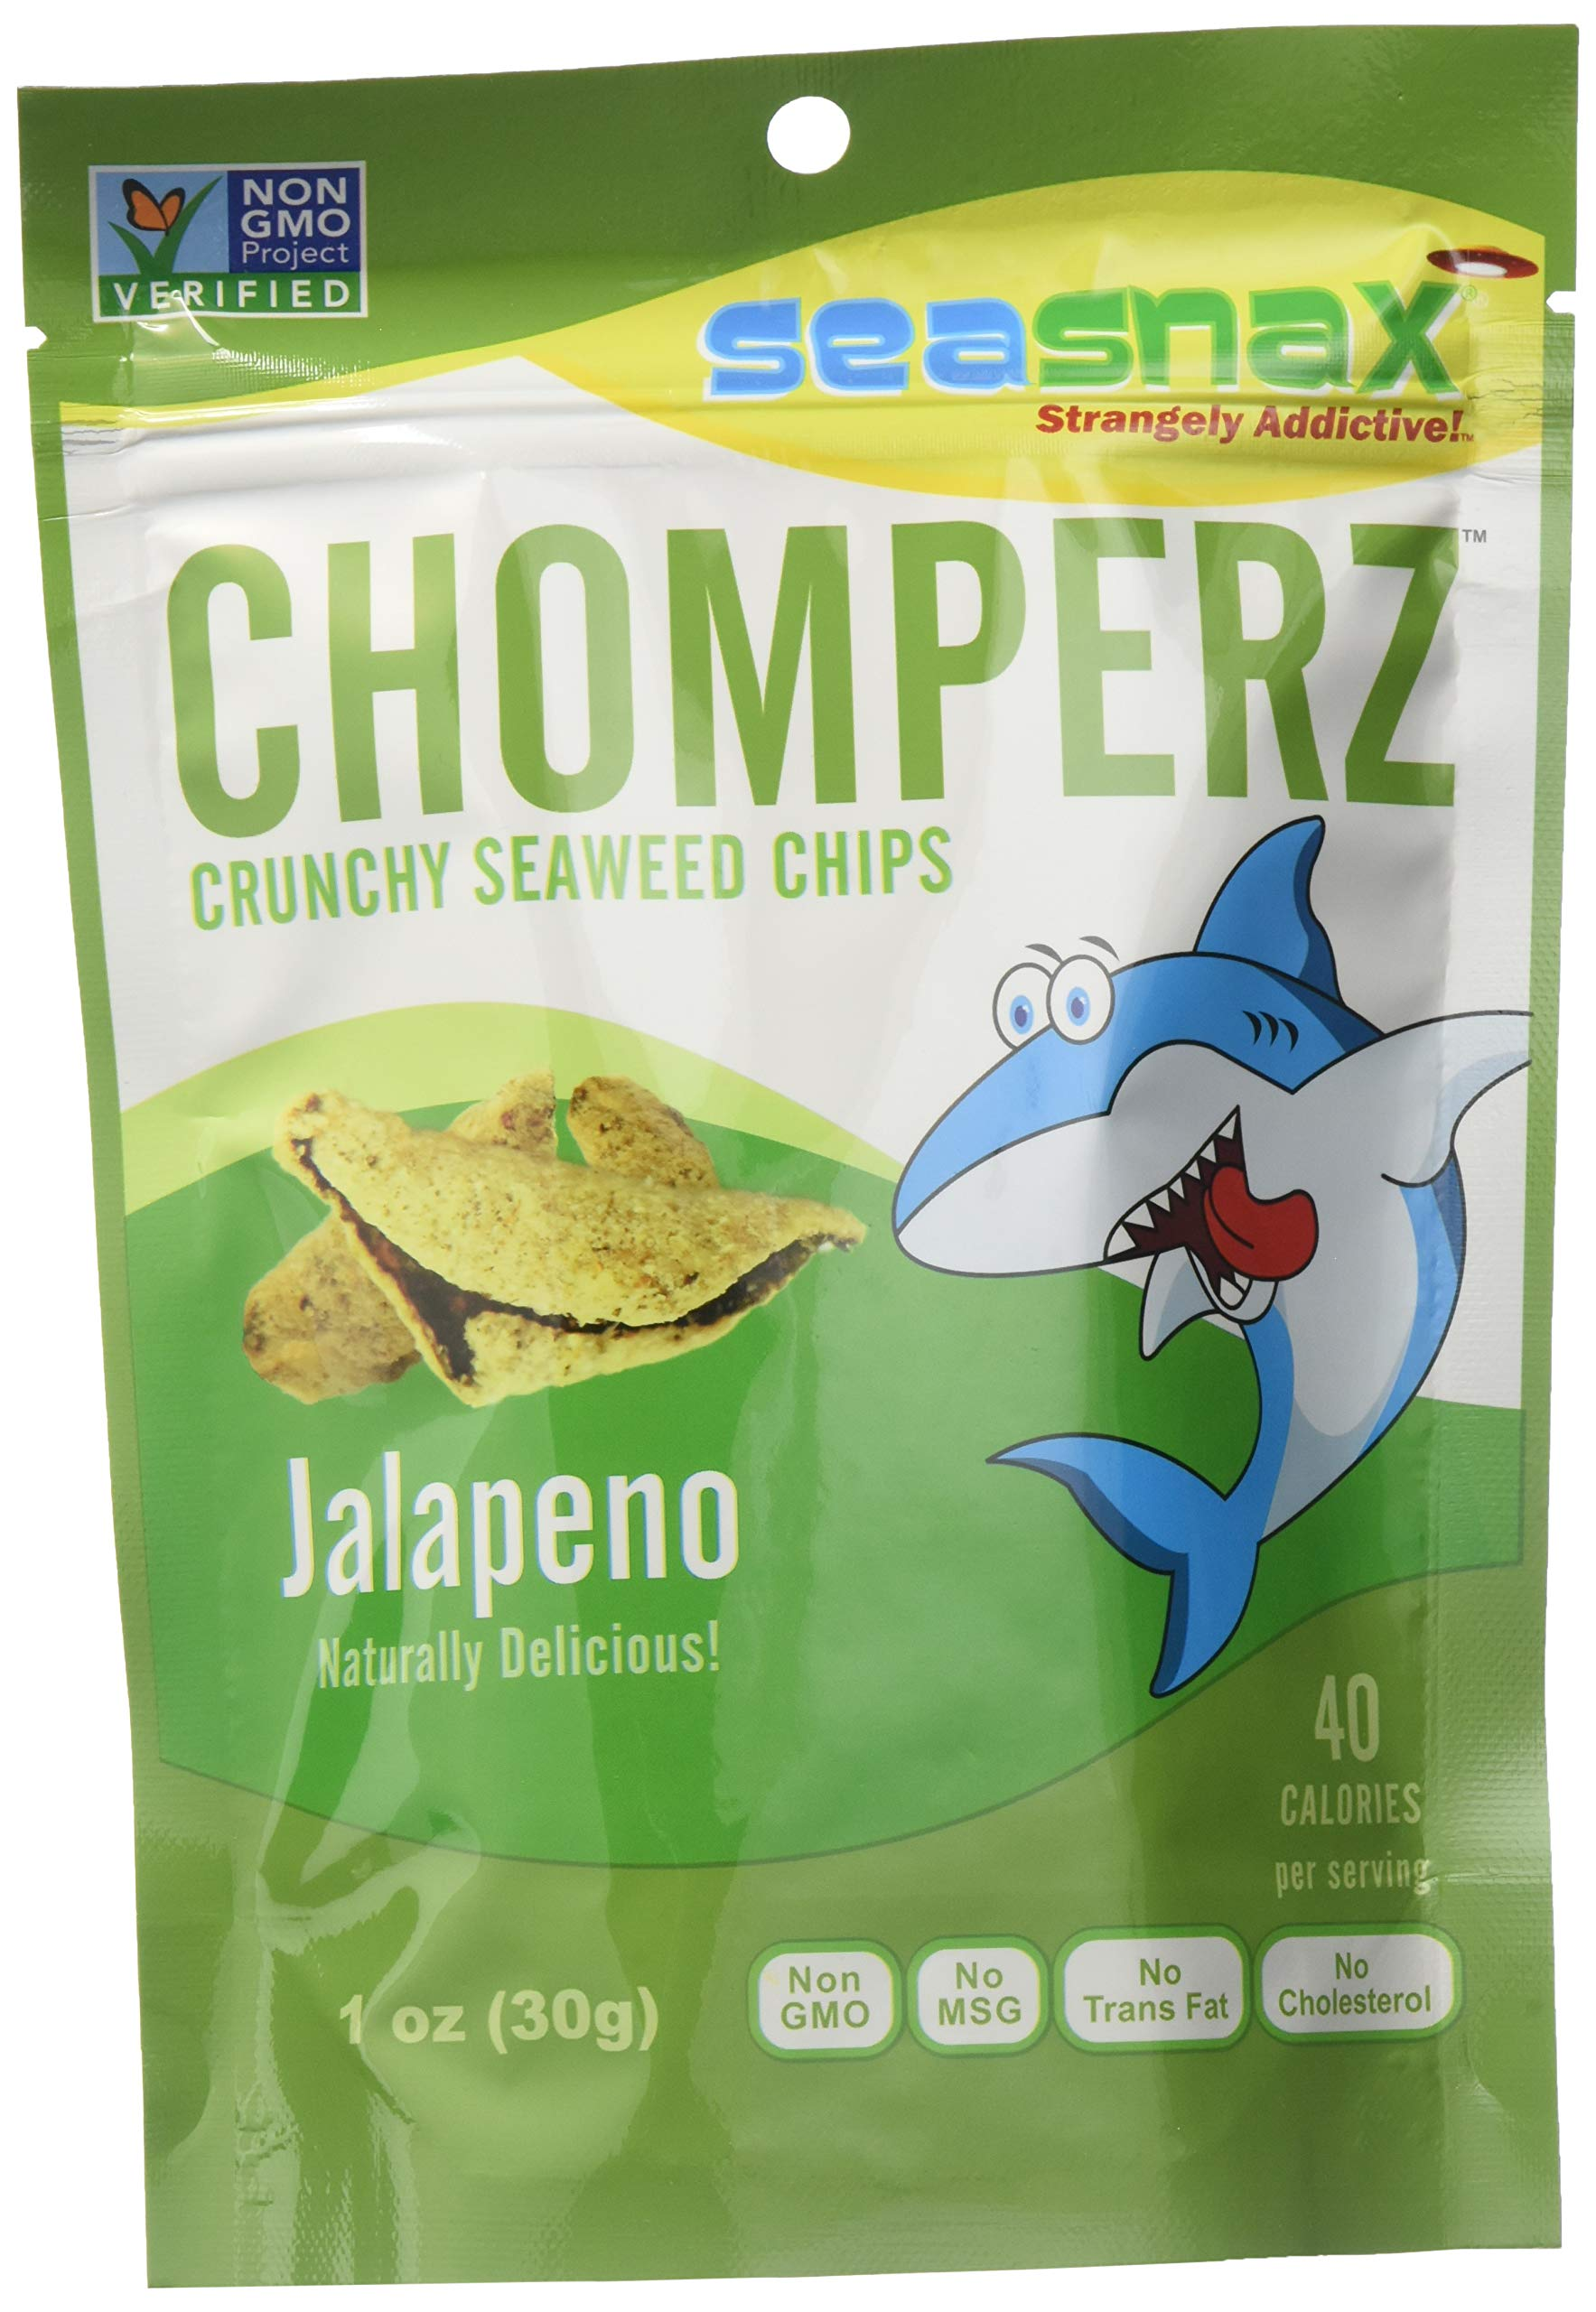 SeaSnax Chomperz Crunchy Seaweed Chips Jalapeno, 1 oz (Pack of 8)